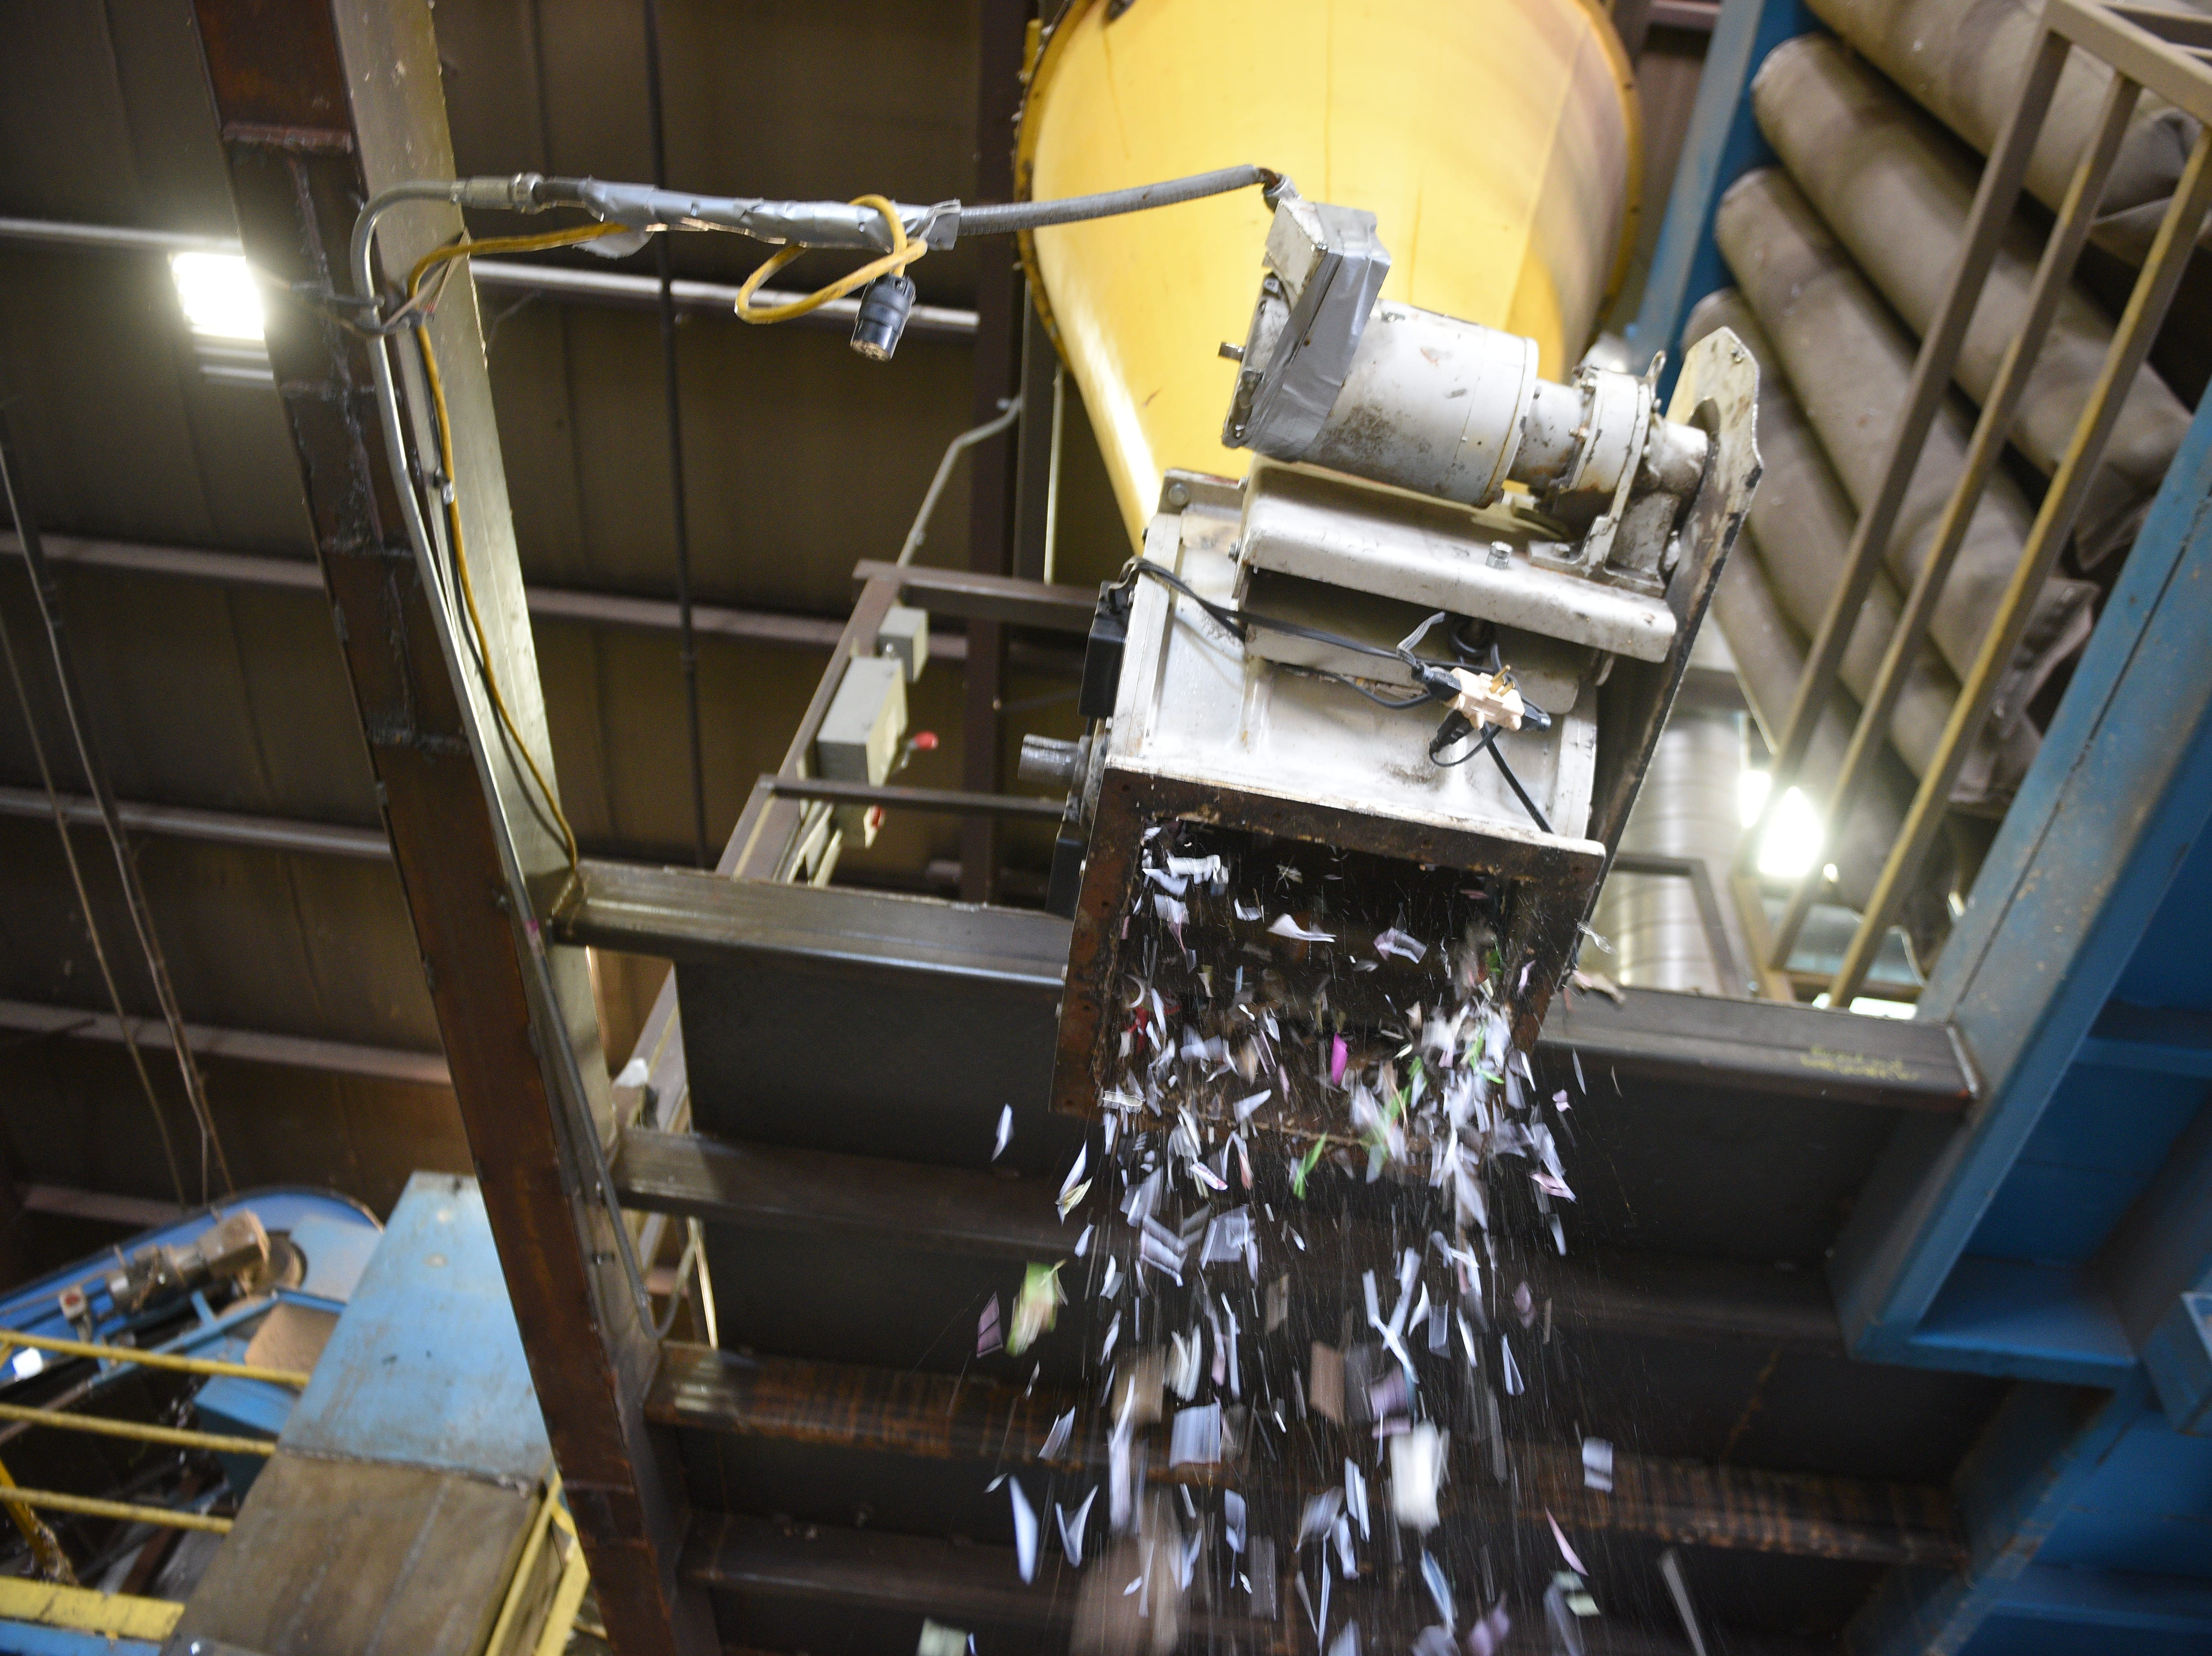 A network of machines and belts work to sort recycled materia at Millennium Recycling in Sioux Falls. Millennium is celebrating its 20th anniversary this year.